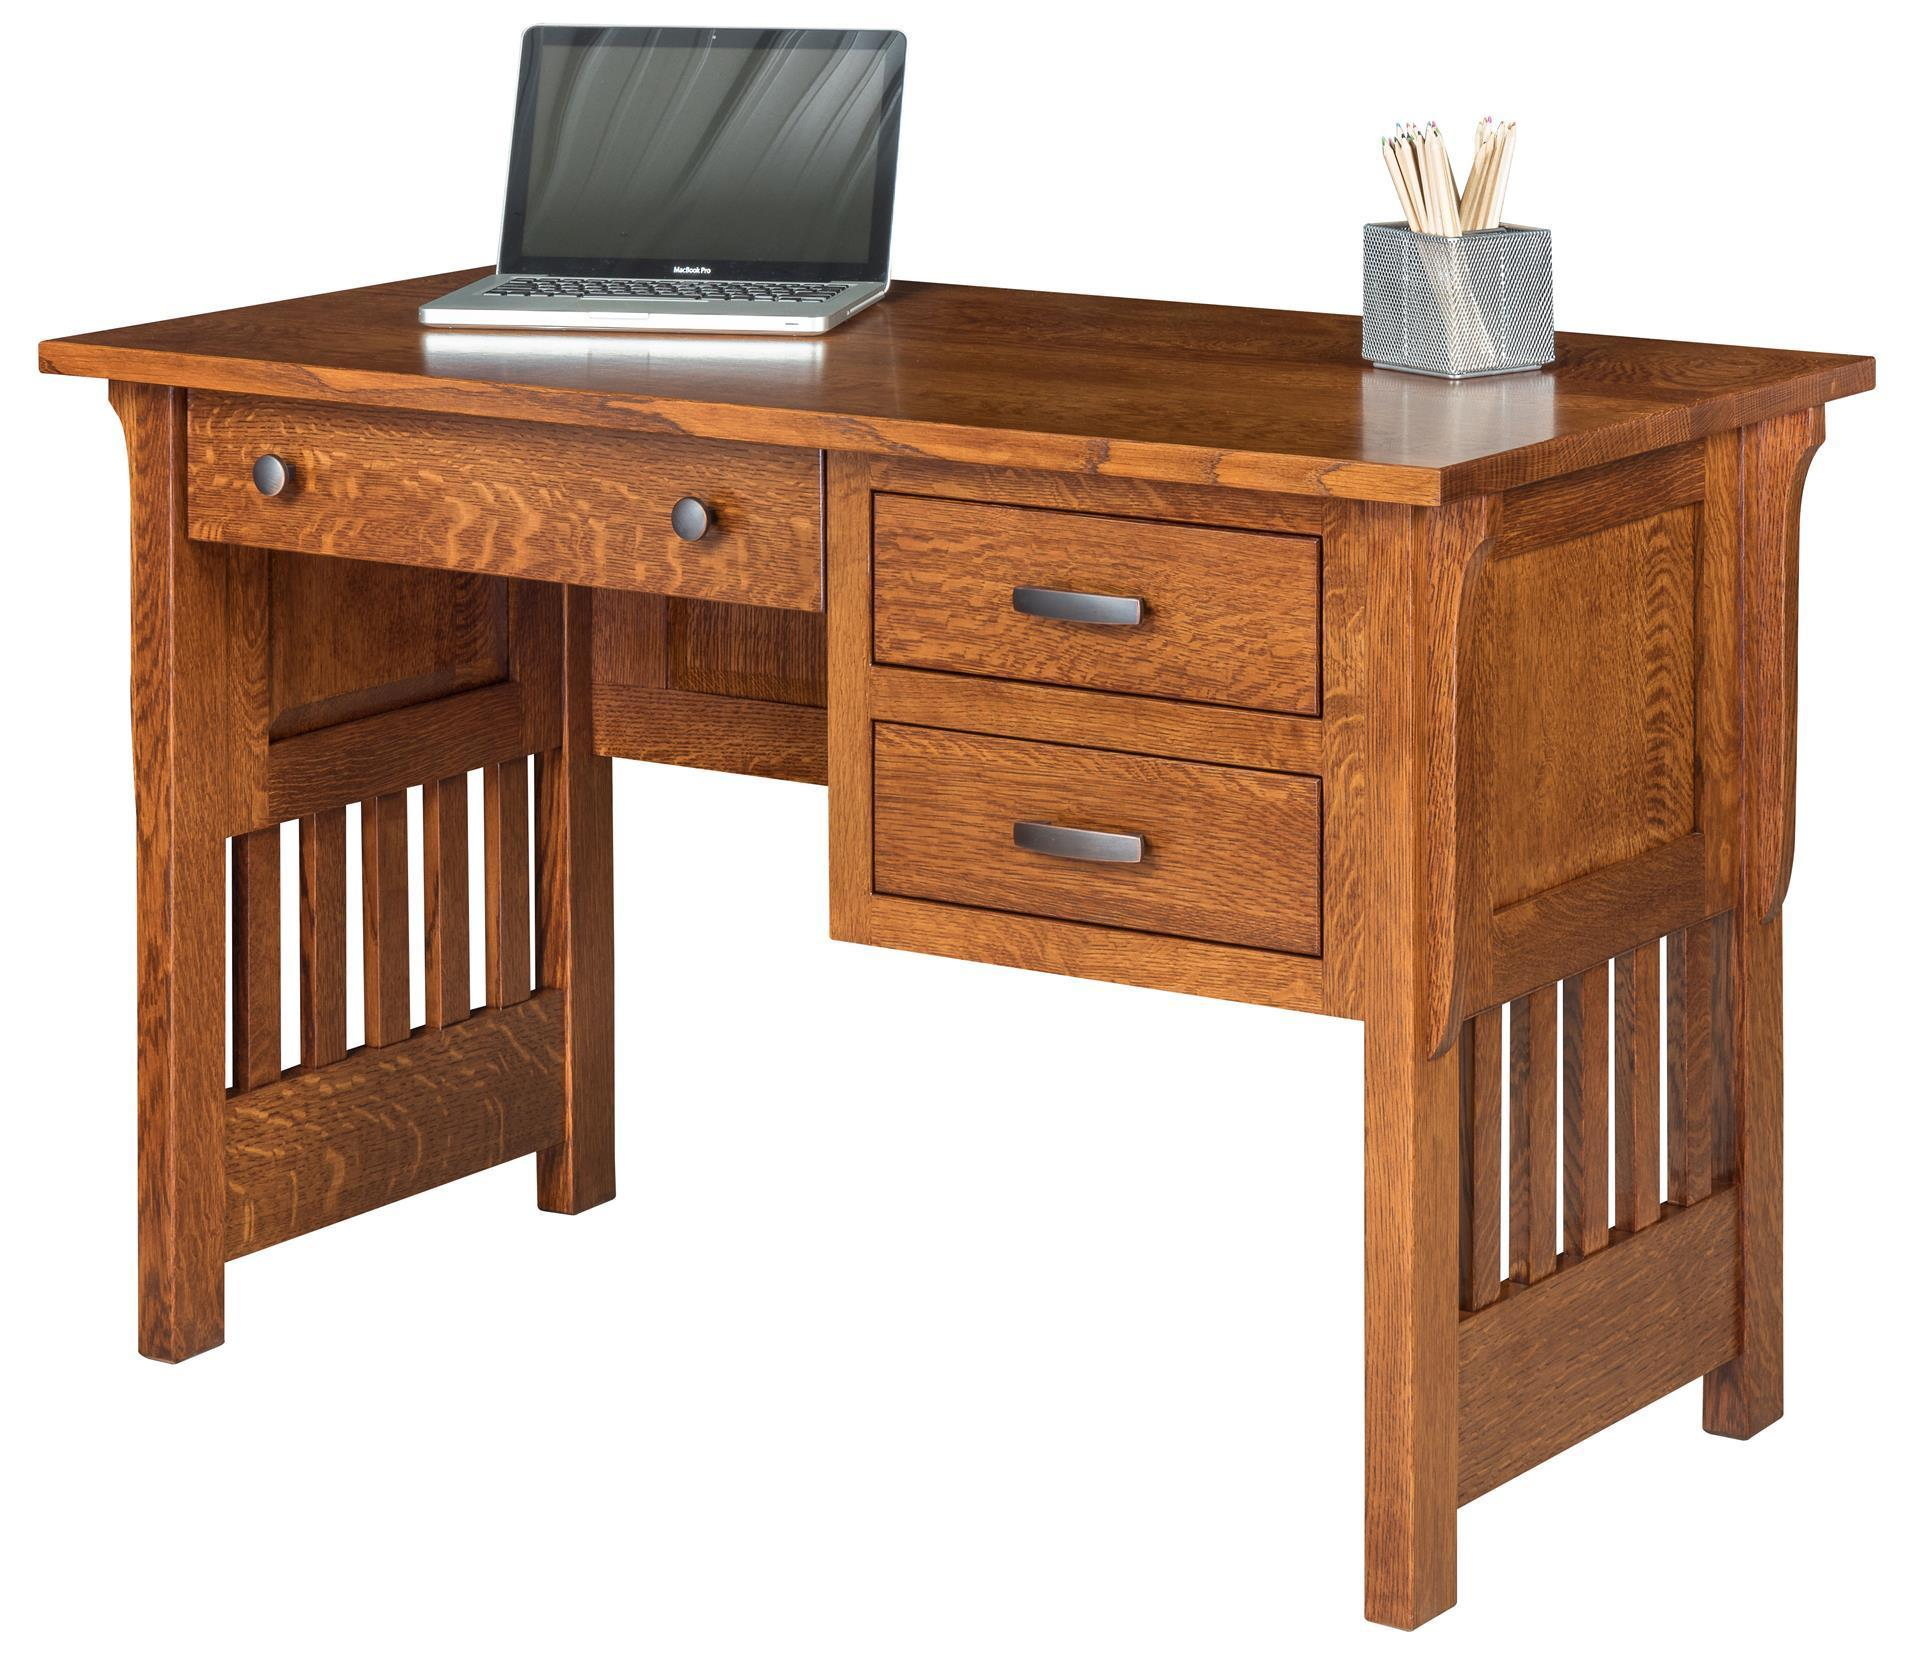 Solid Wood Boston Mission Writing Desk With Drawrs From